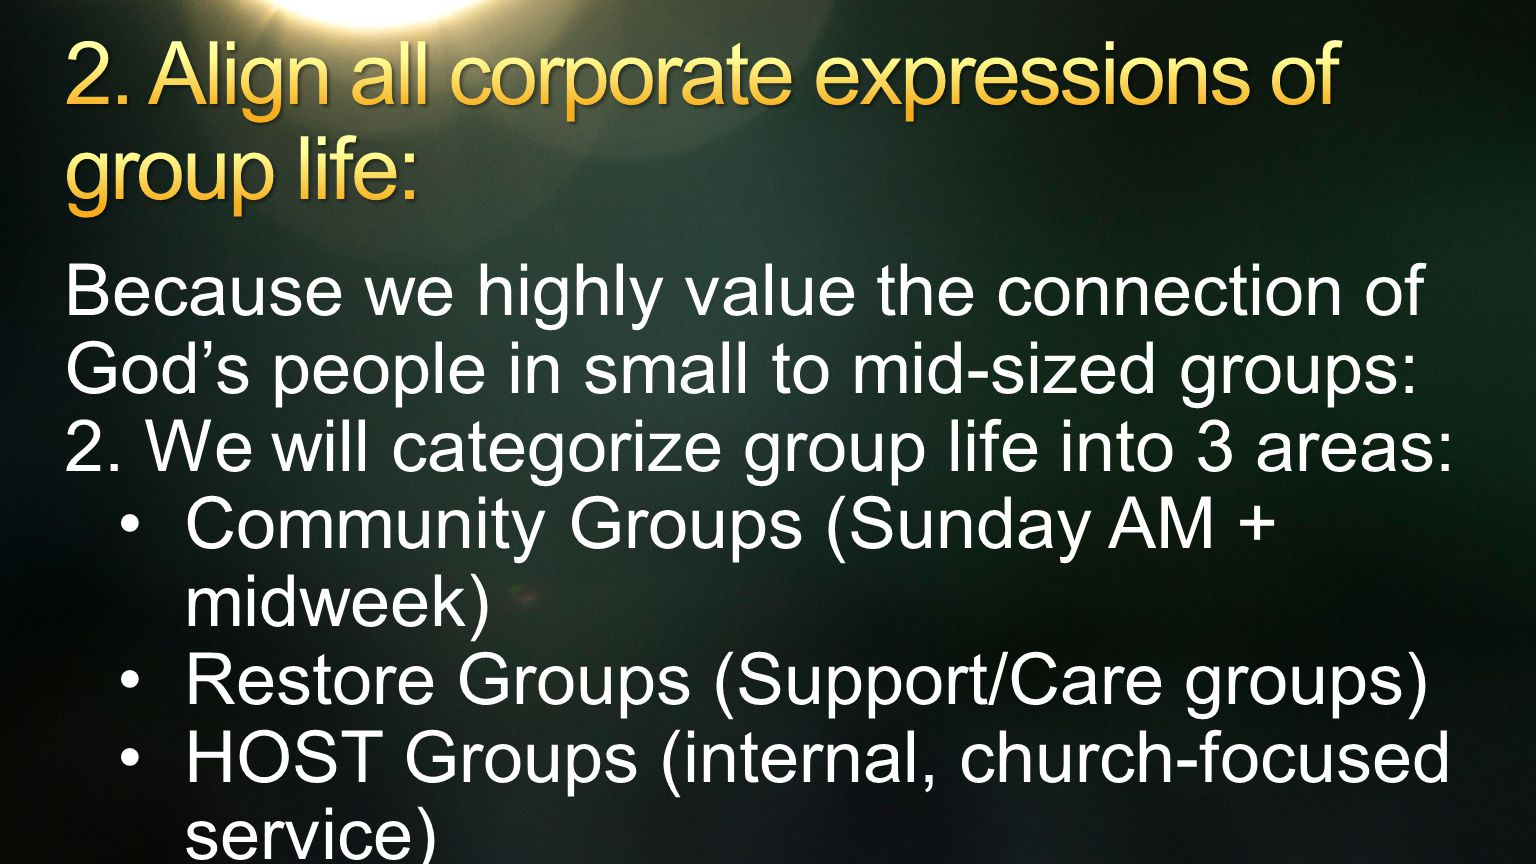 Because we highly value the connection of God's people in small to mid-sized groups: 2.